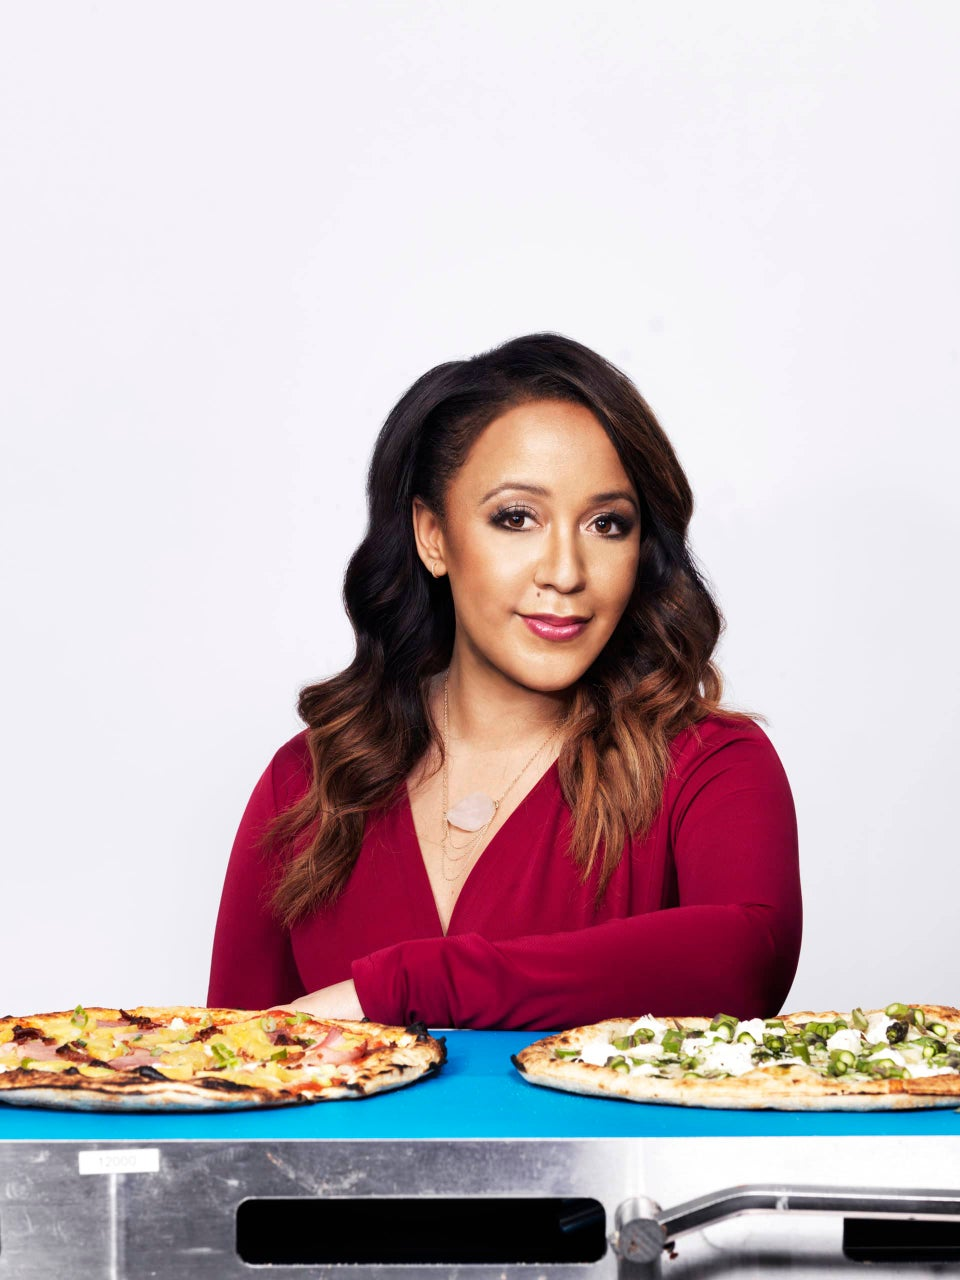 This Woman's Love Of Food Helped Build A Company Worth $2.25 Billion